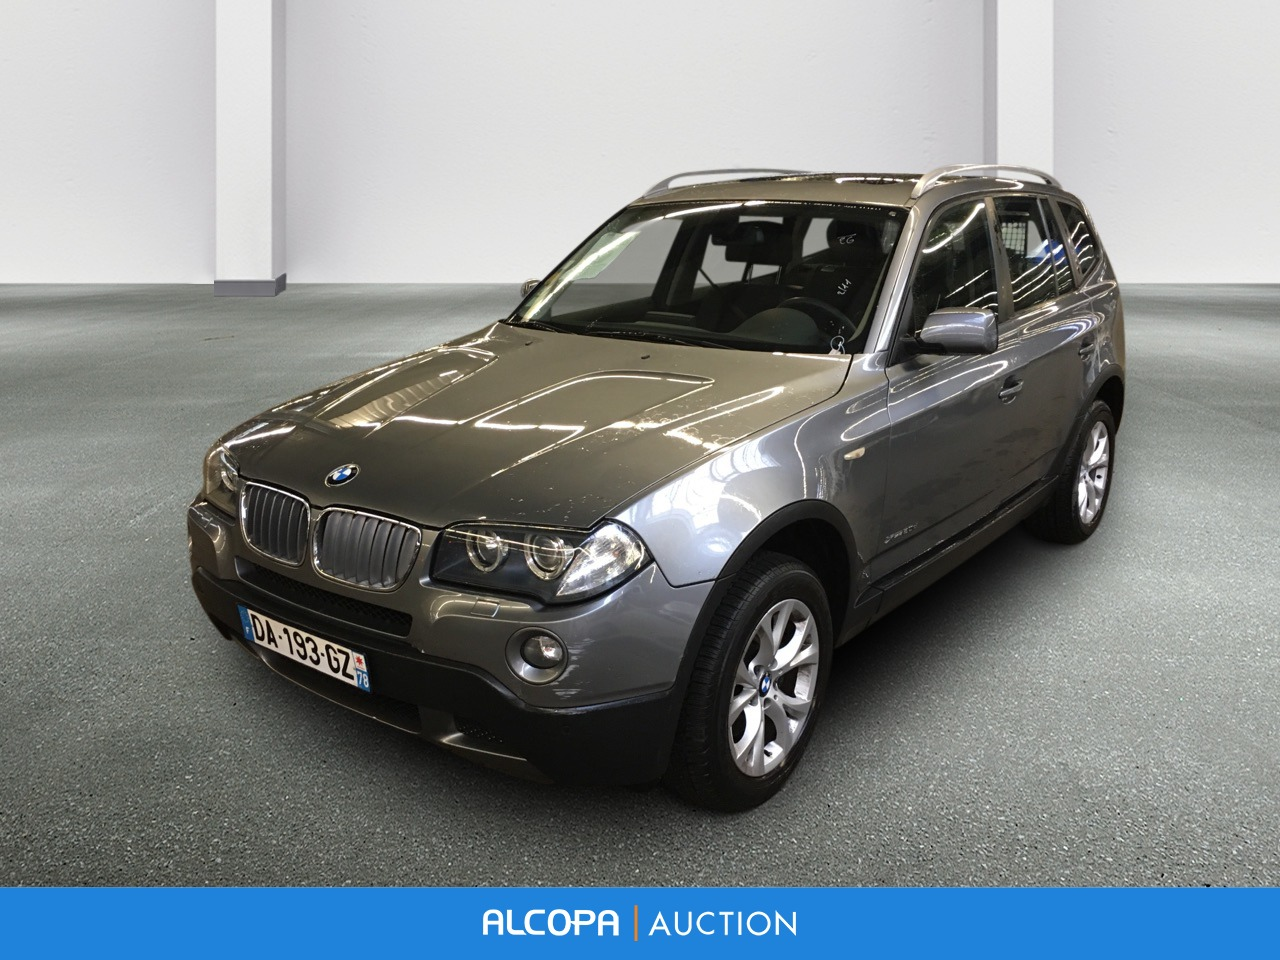 bmw x3 e83 lci x3 xdrive20d 177ch excellis alcopa auction. Black Bedroom Furniture Sets. Home Design Ideas